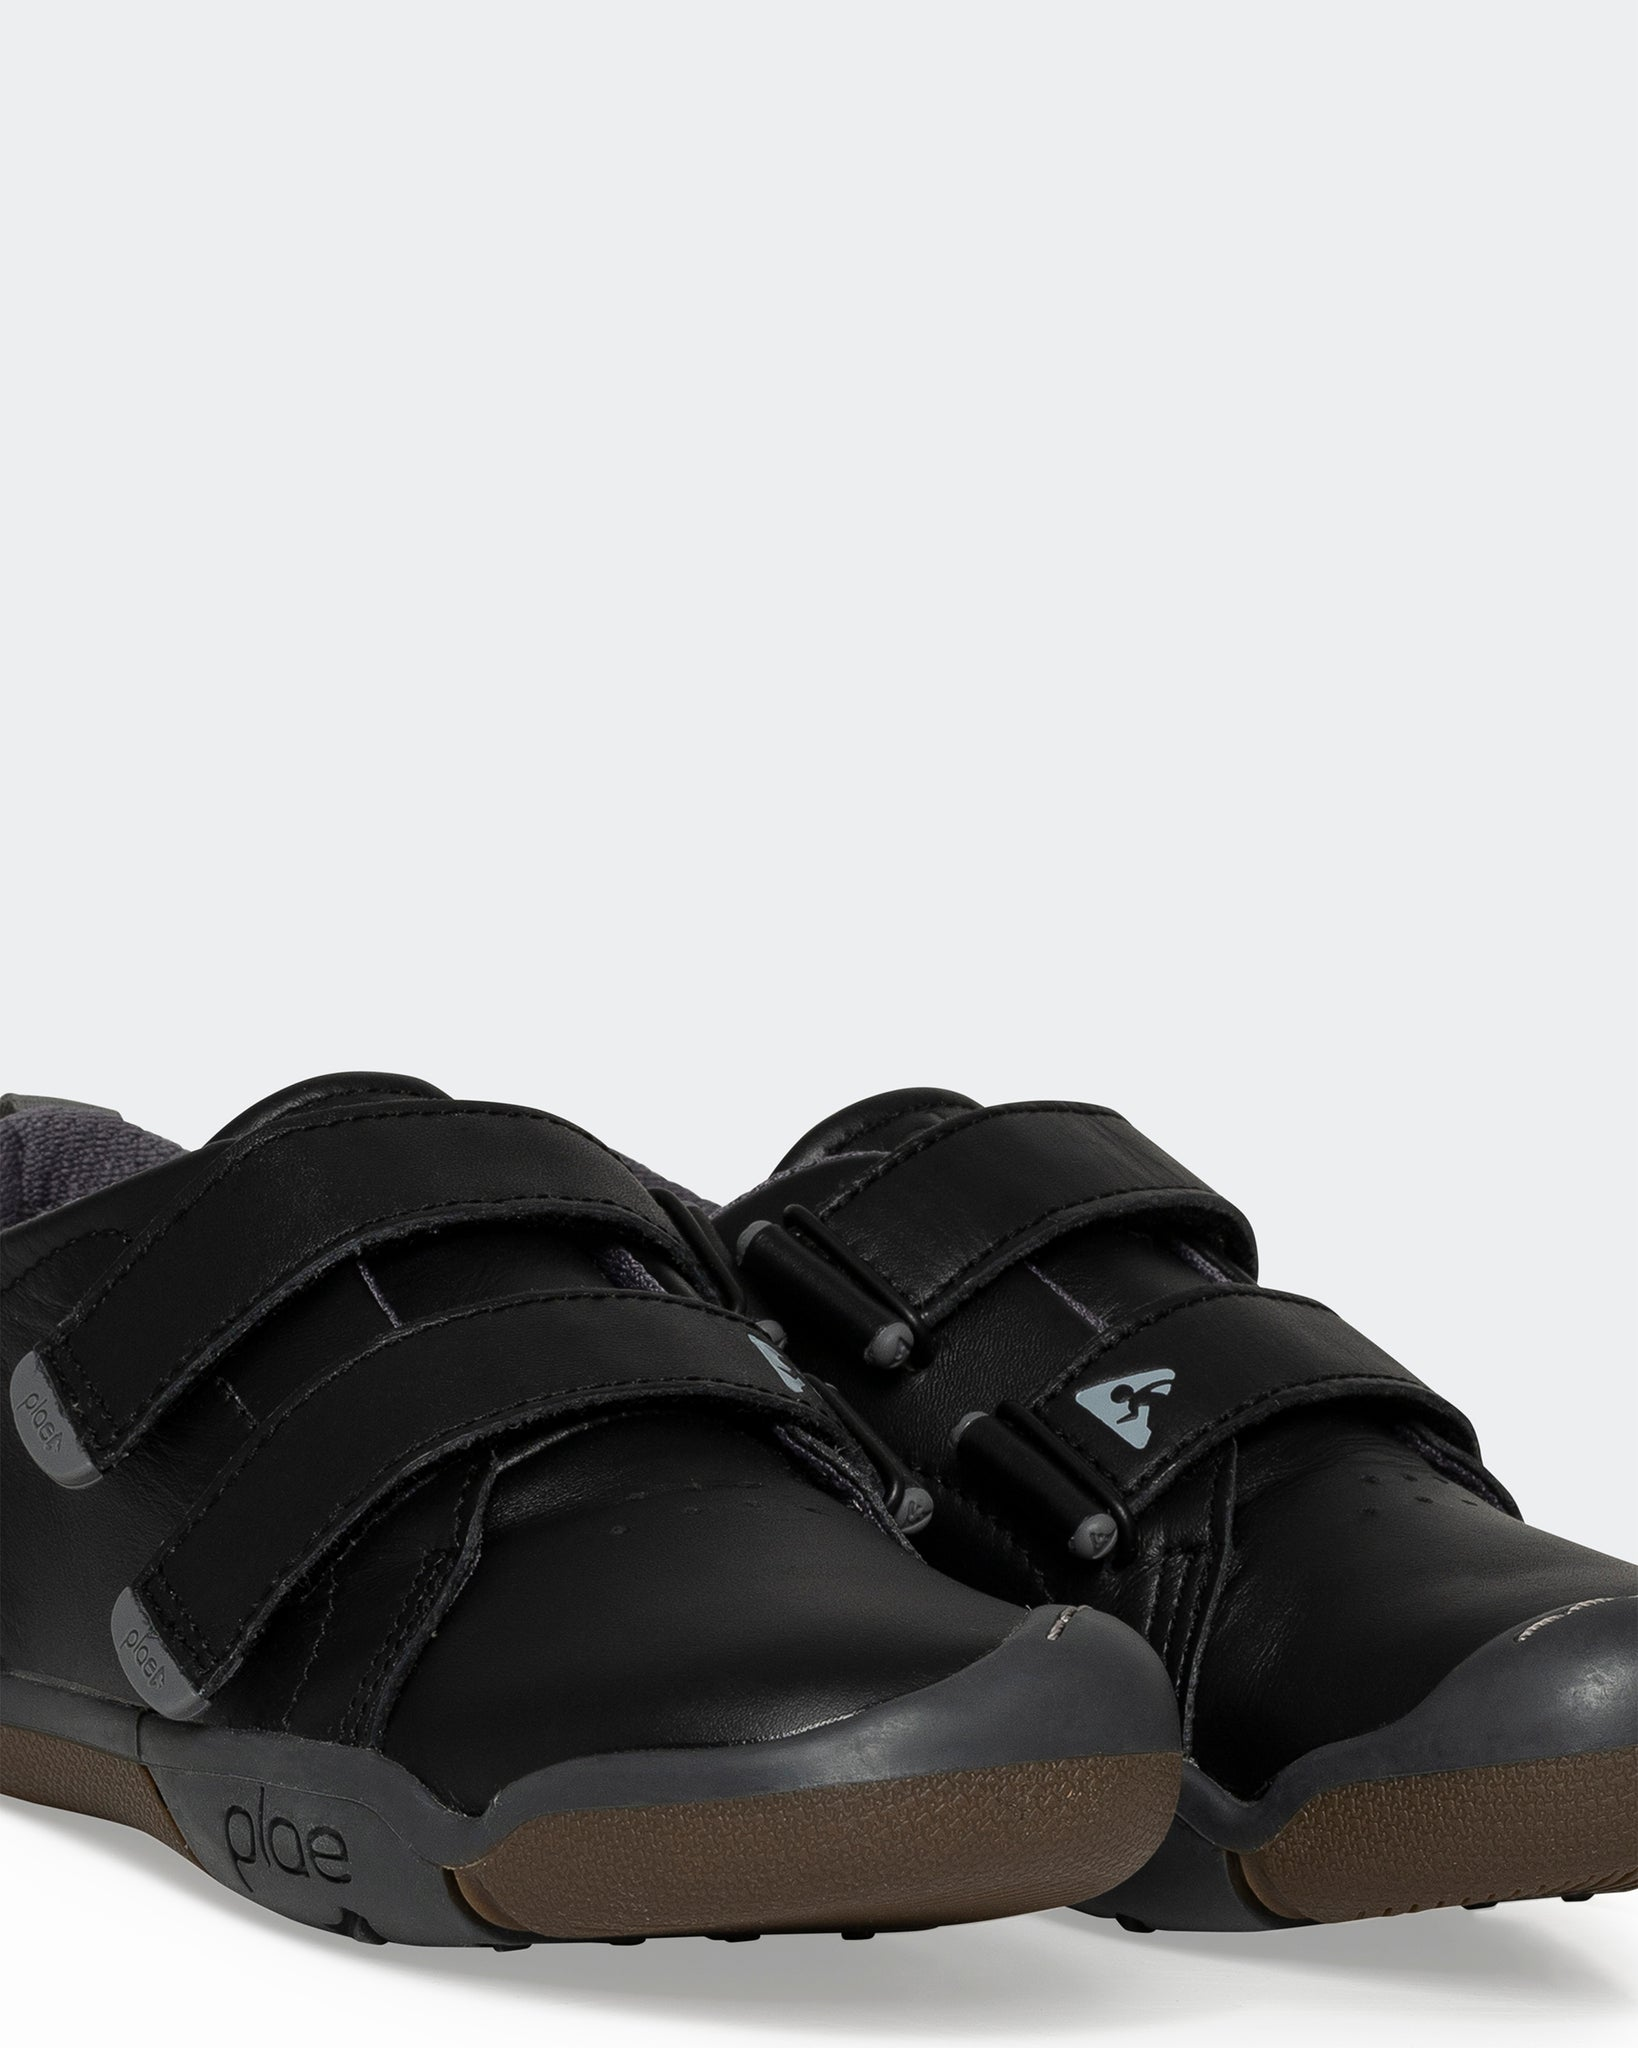 Roan (Toddler) - Black